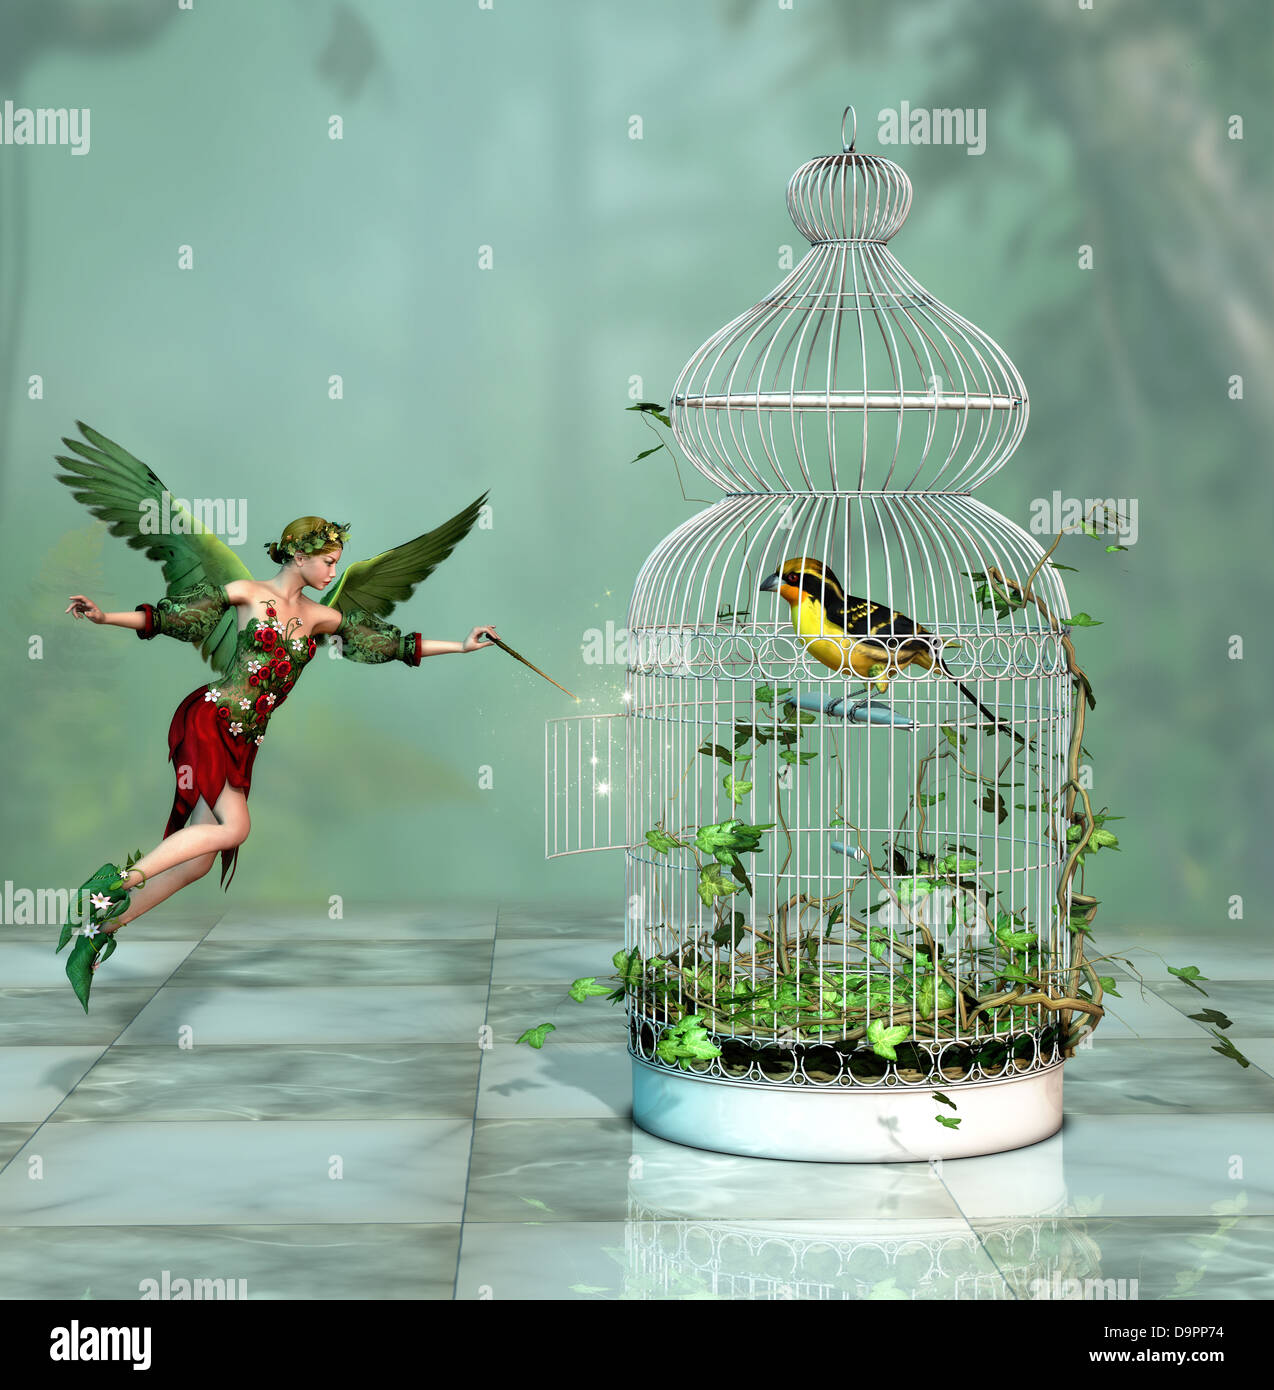 a fairy freed a bird out of the cage 3d Computer Graphics - Stock Image